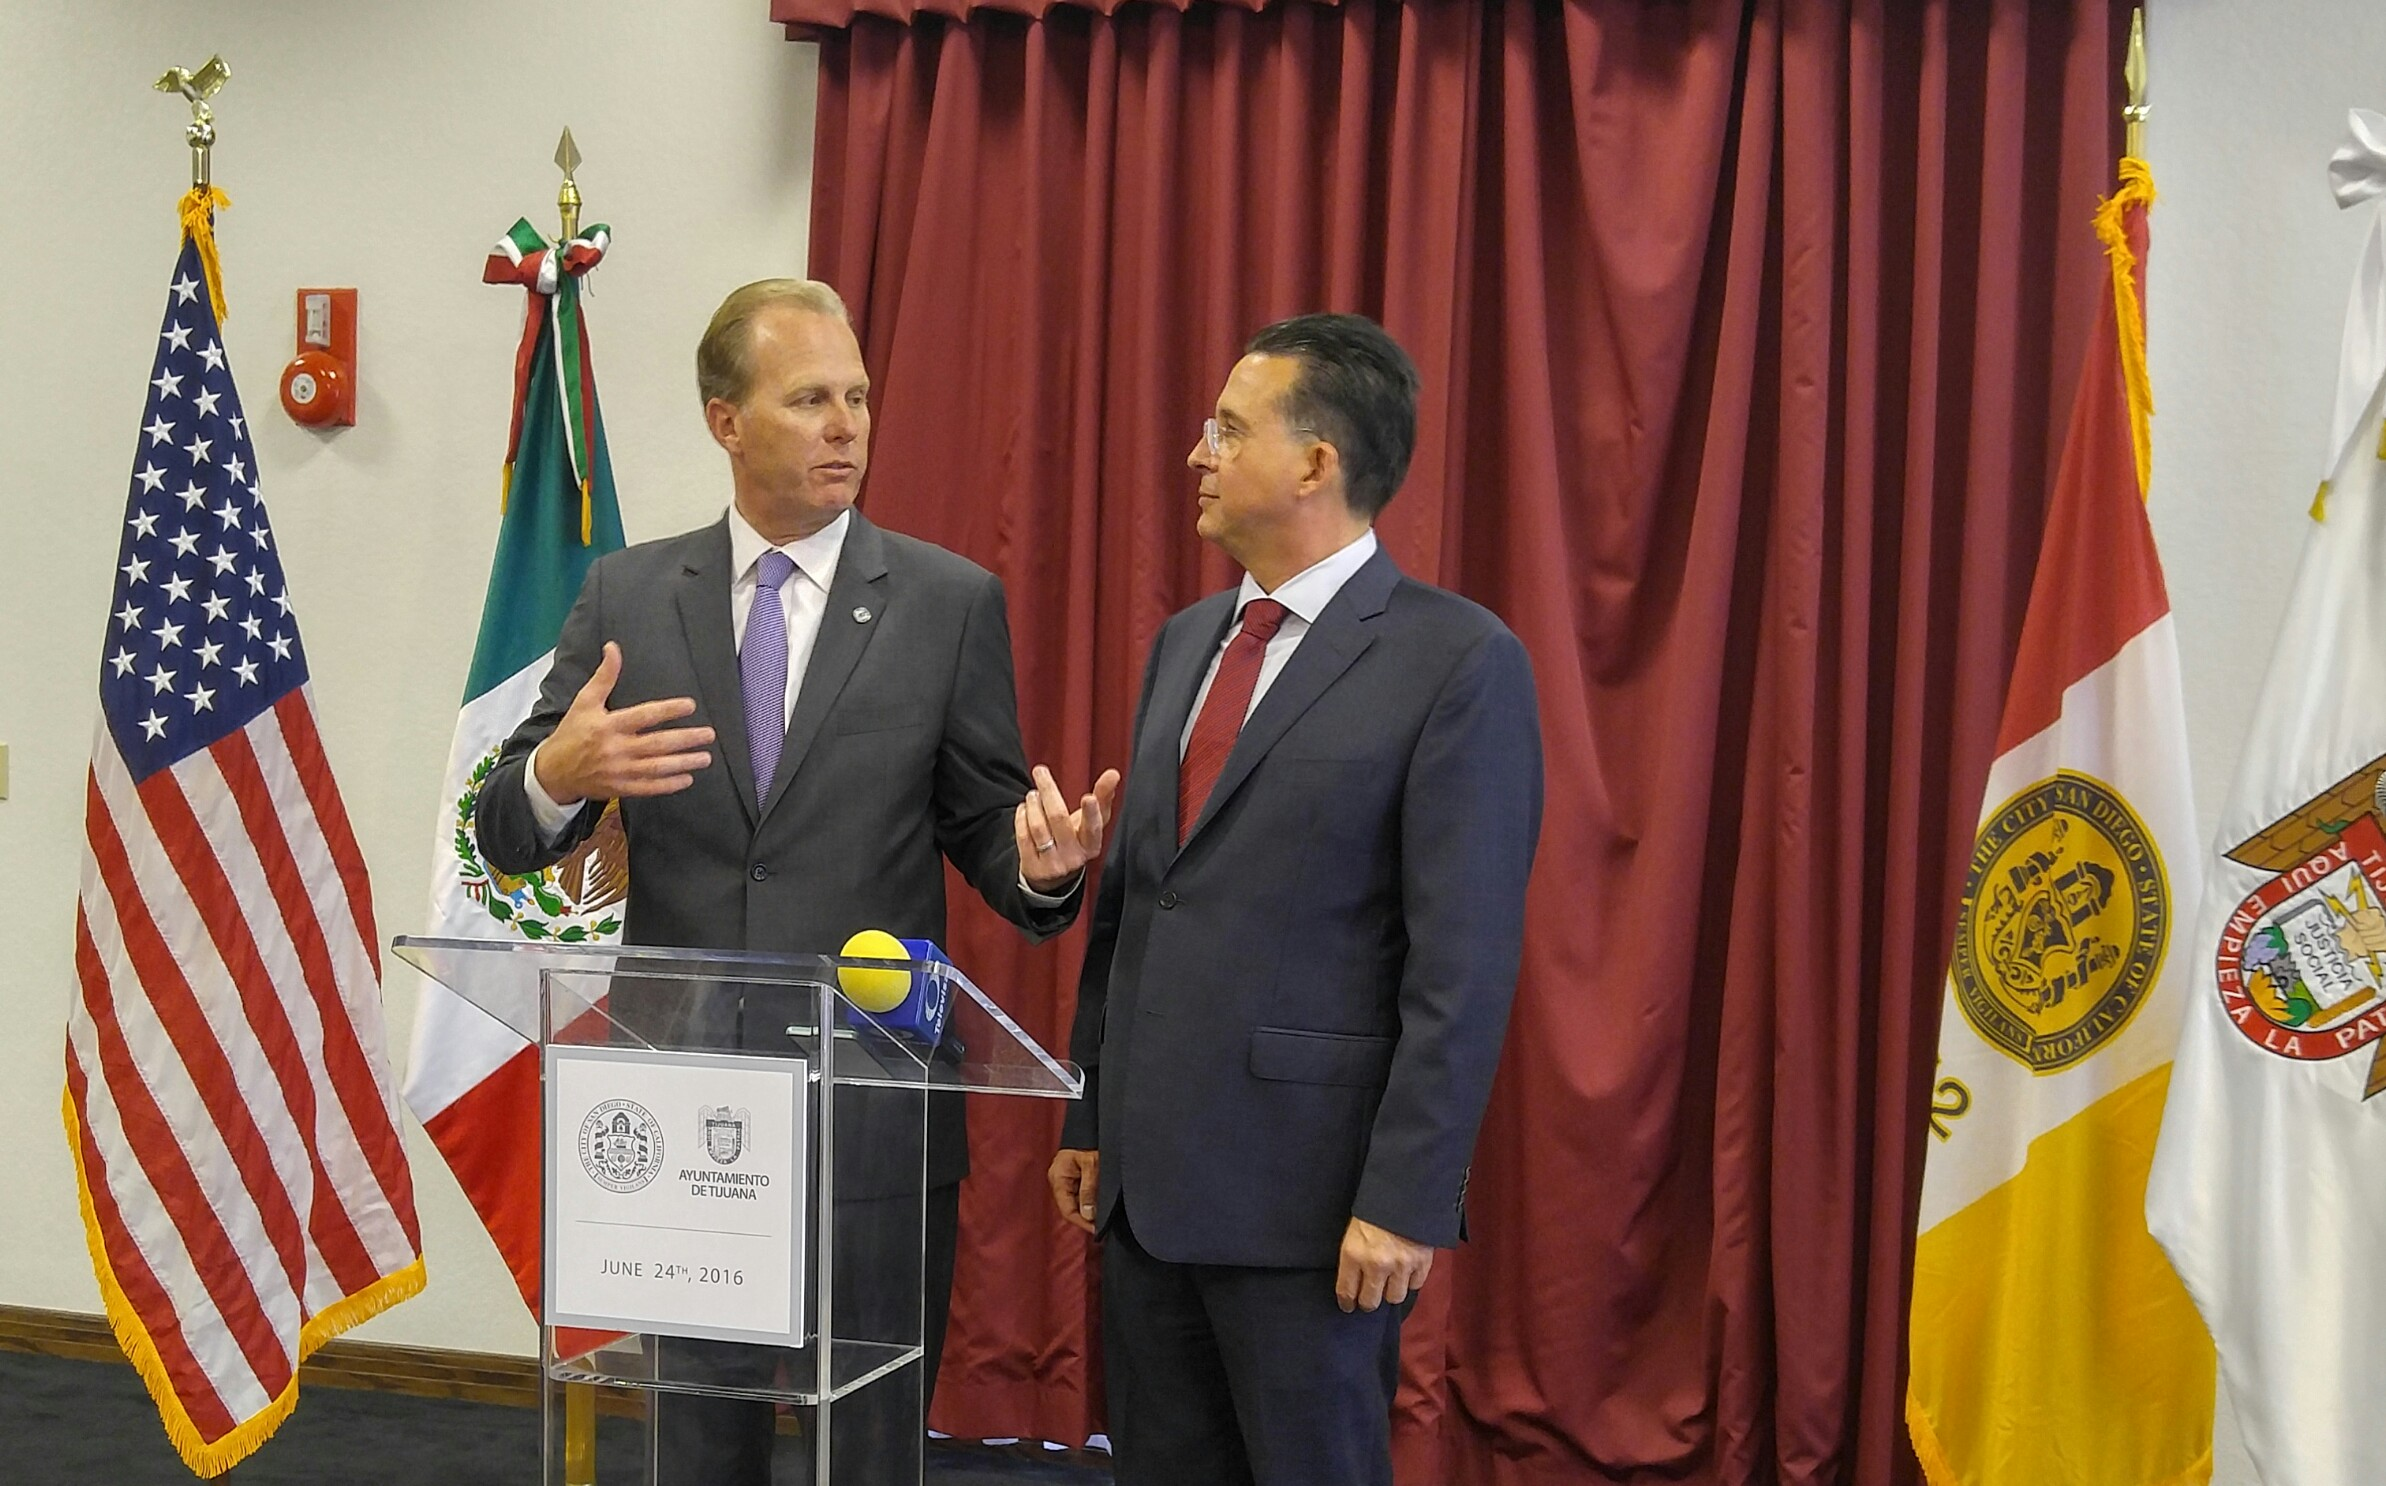 San Diego Mayor Kevin L. Faulconer and Tijuana Mayor Jorge Astiazarán highlight success of binational collaboration.